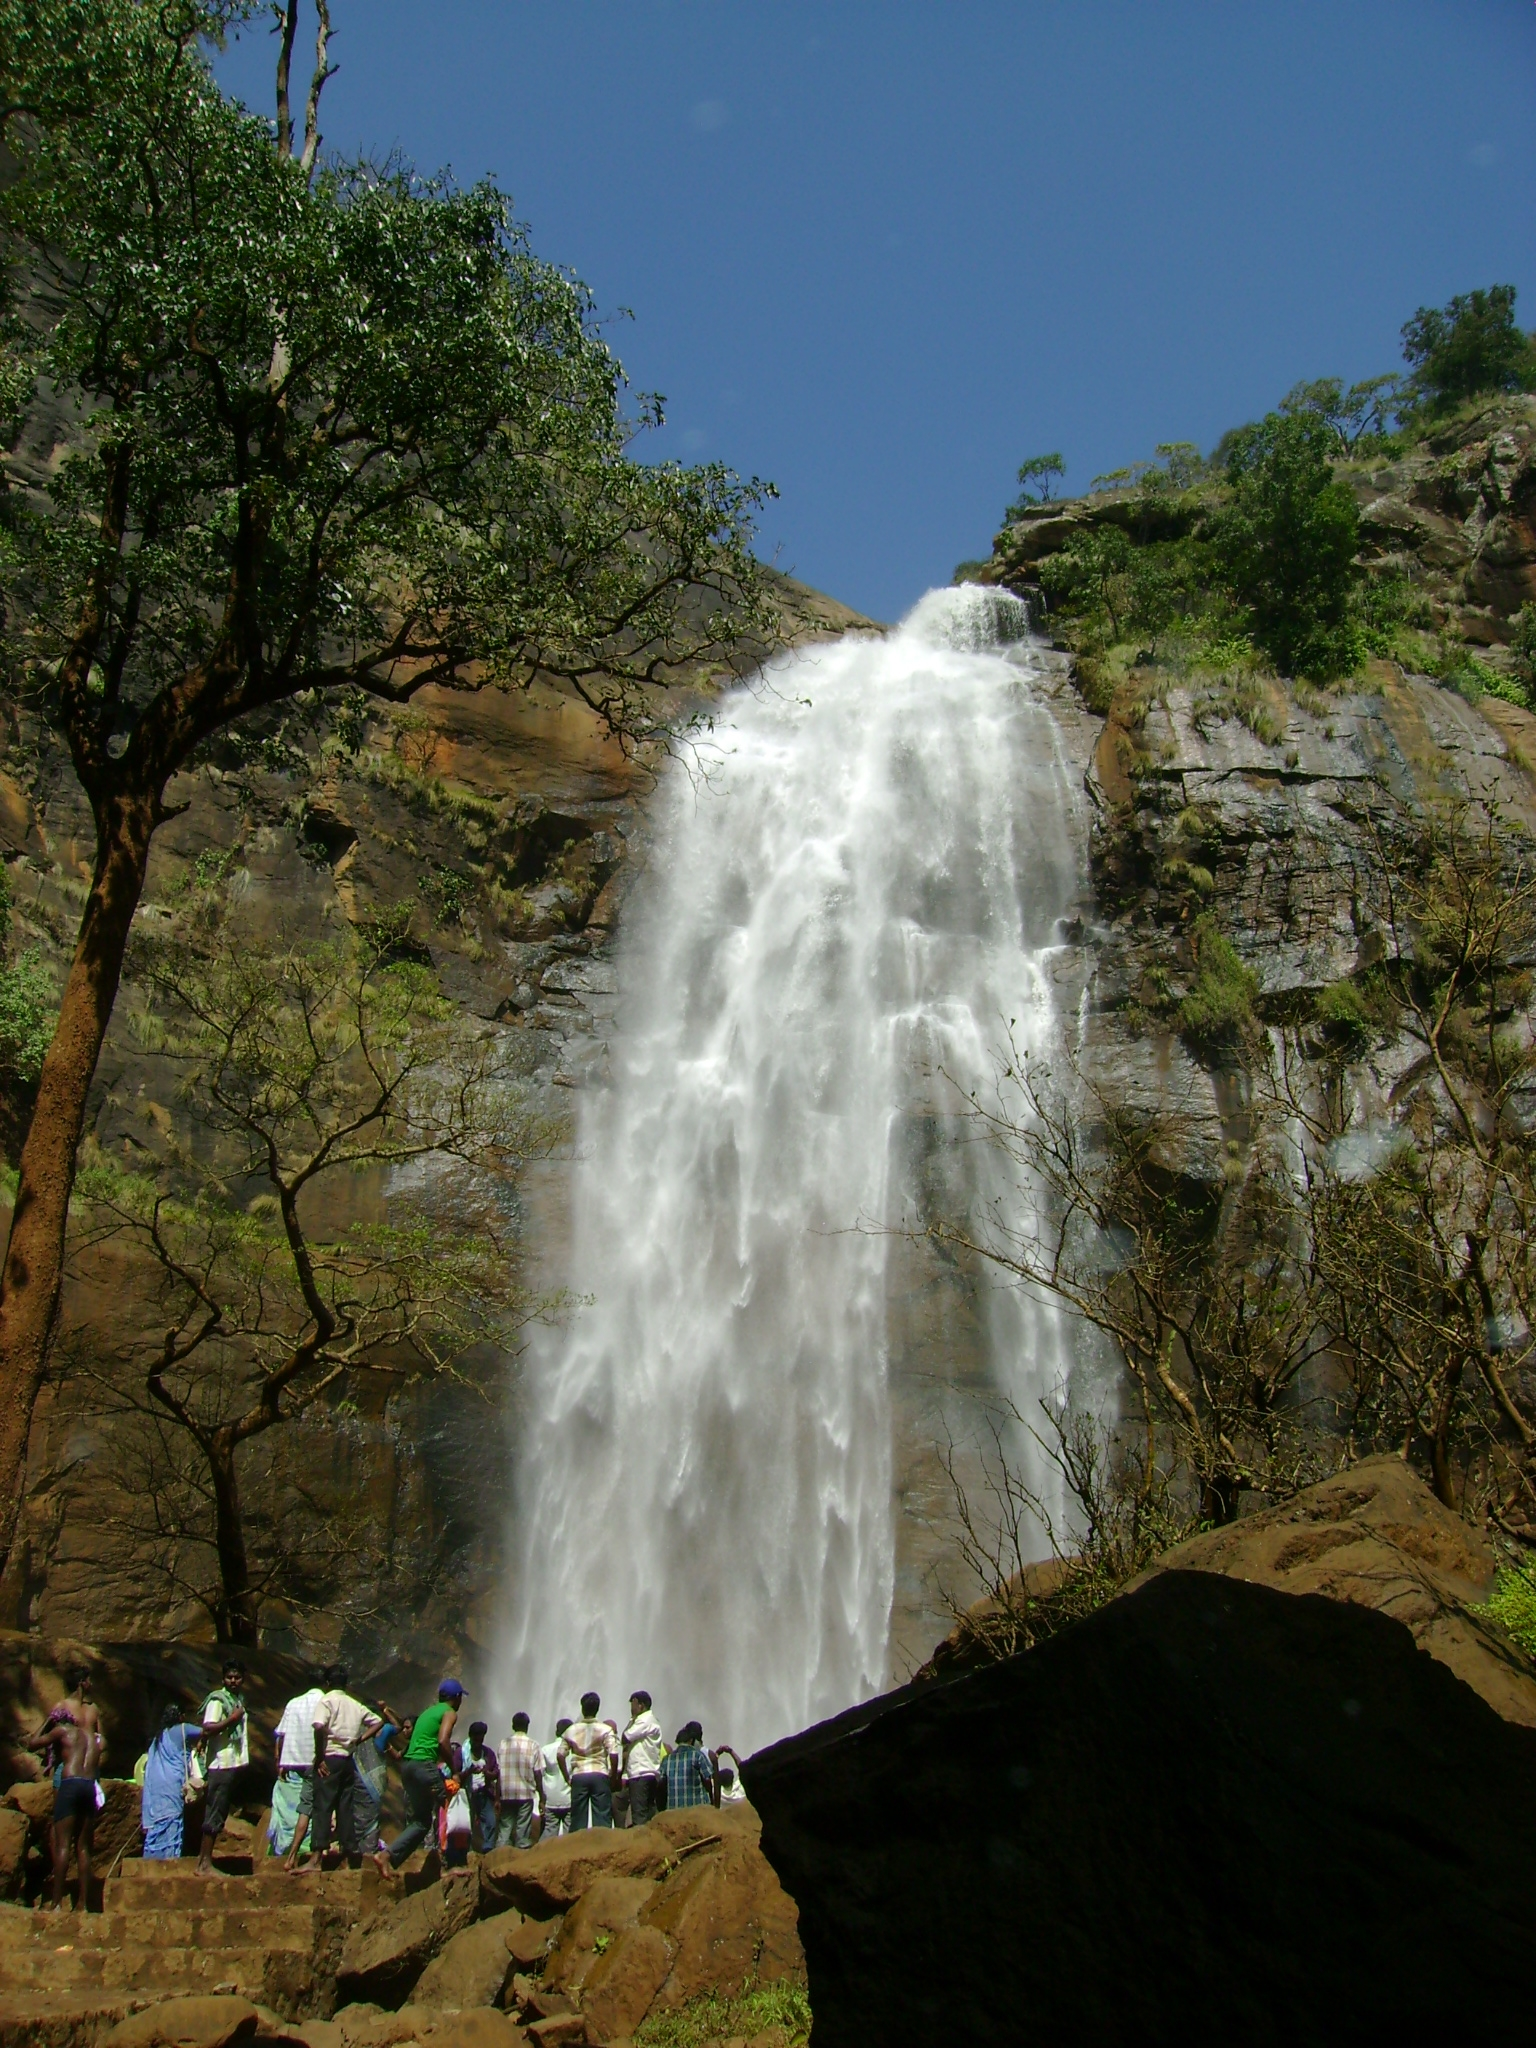 http://upload.wikimedia.org/wikipedia/commons/8/8d/Kolli_Hills_Waterfalls.JPG